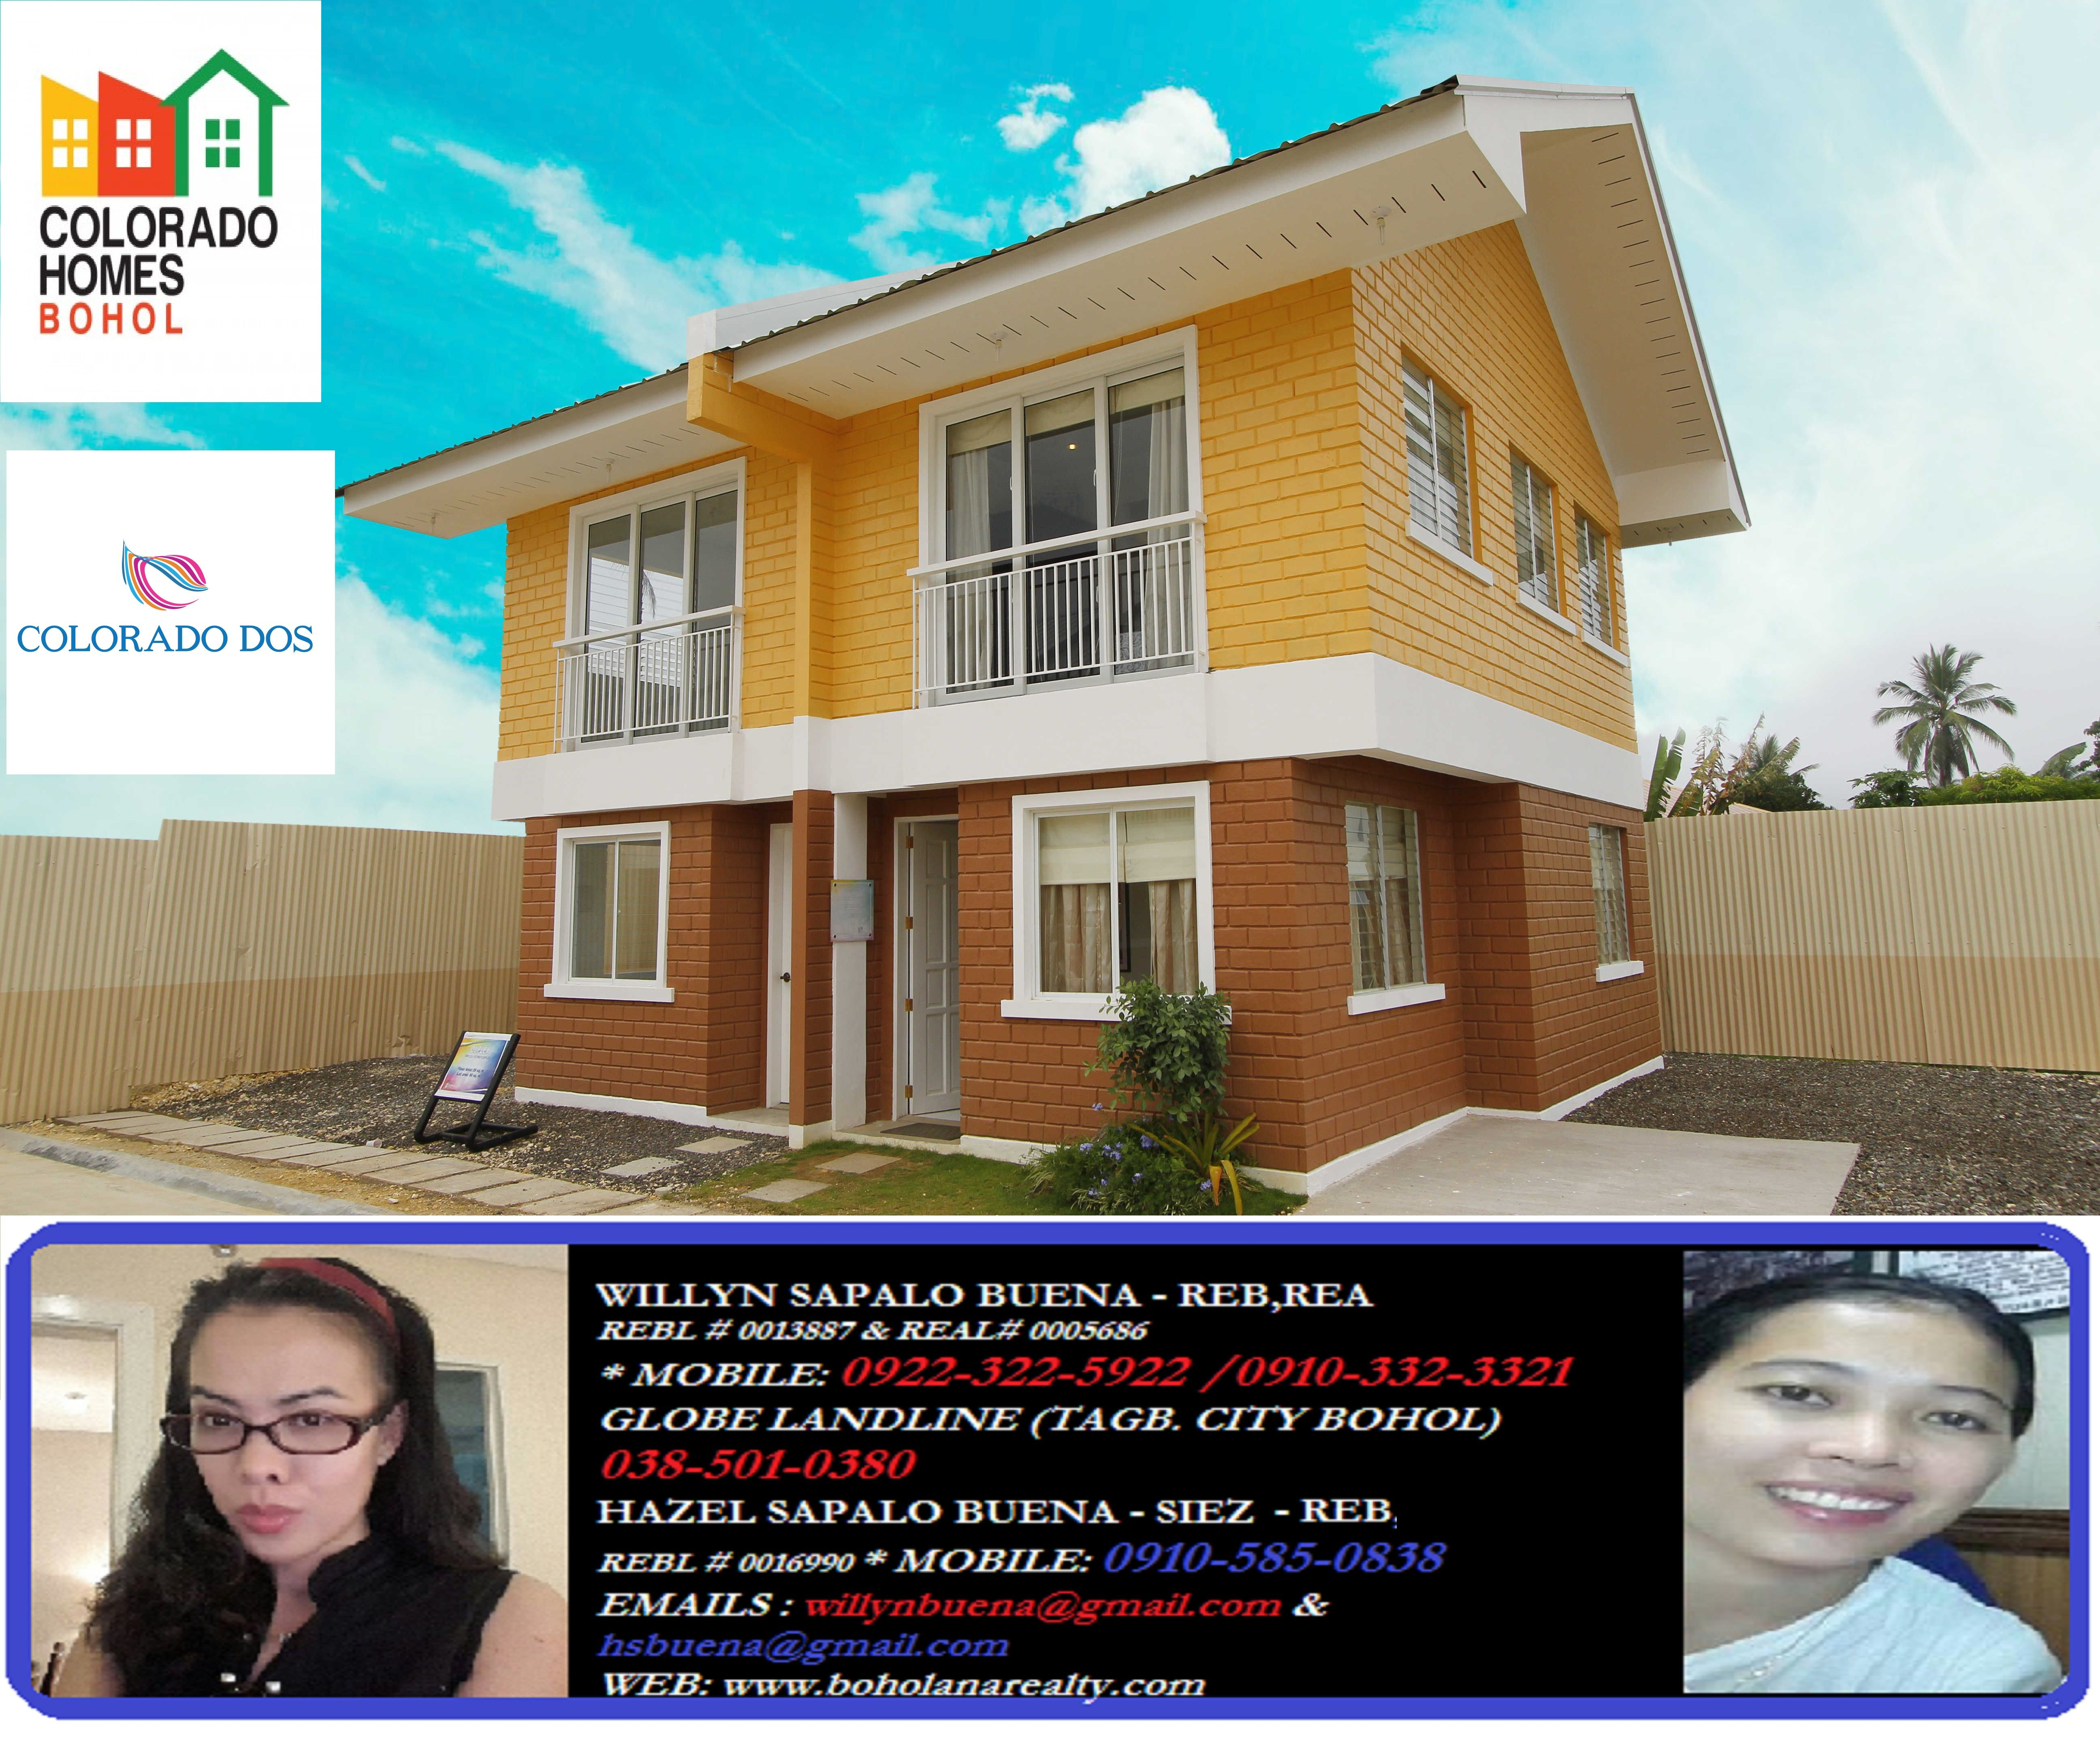 Colorado Homes Baclayon Bohol (Primary Homes Inc) Real Estate Bohol Real Estate Baclayon Boholana Realy  ALBUM LINK : https://www.facebook.com/media/set/?set=a.858278870891511.1073741887.158421820877223&type=3  VIDEO 1: https://www.facebook.com/video.php?v=791604554212205&set=vb.394693393903325&type=3&video_source=pages_video_set  CONTACT : 09223225922/09103323321/0385010380